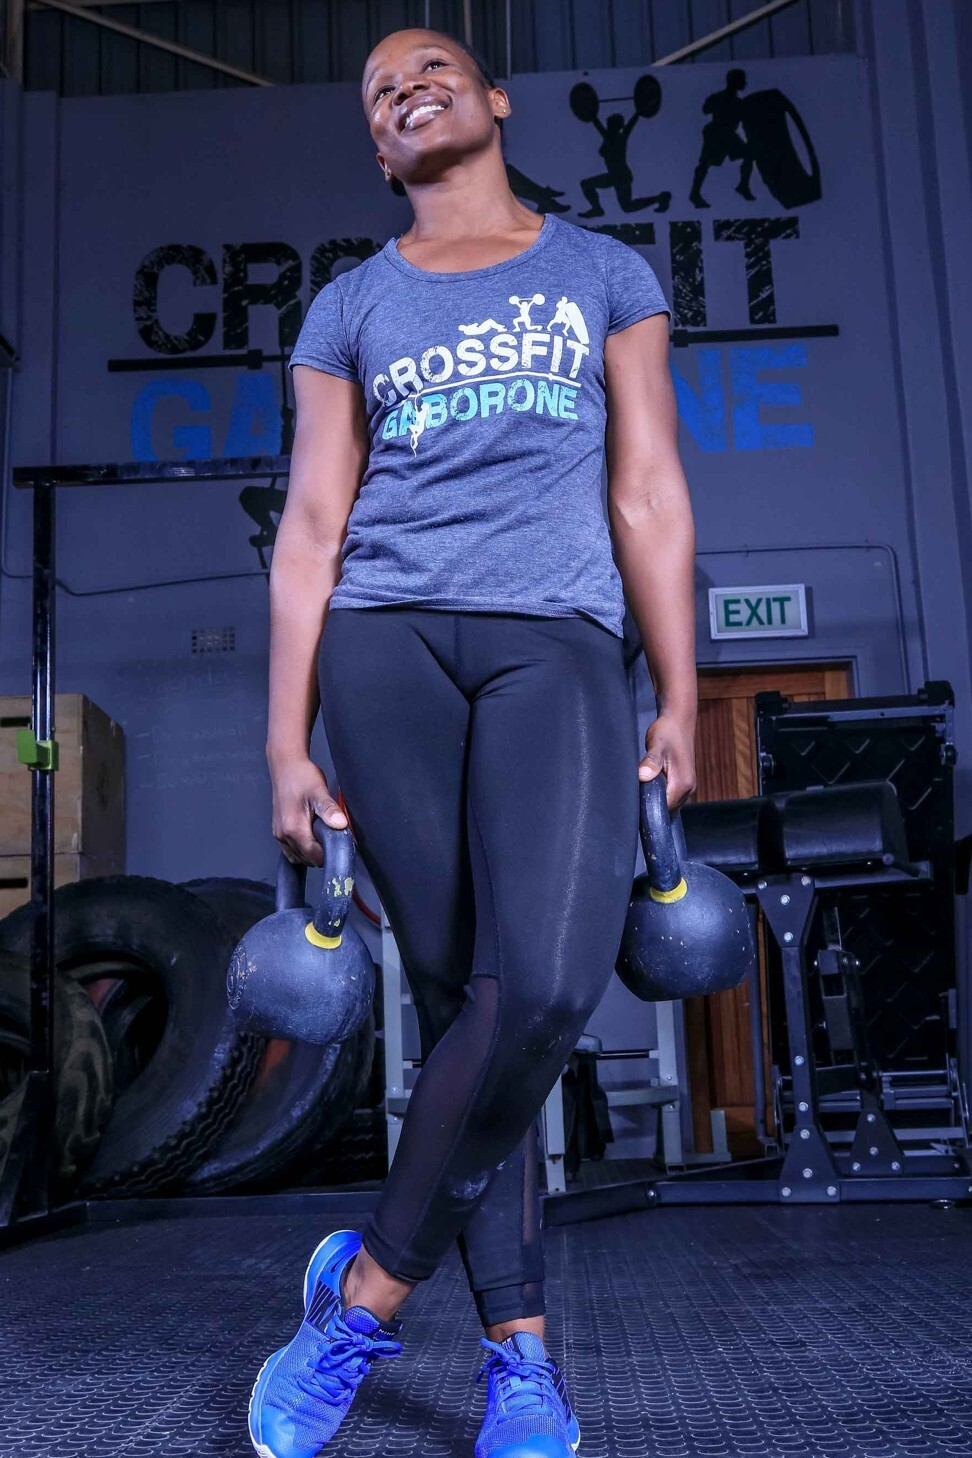 Seru said CrossFit has also given her a sense of community. Photo: Handout